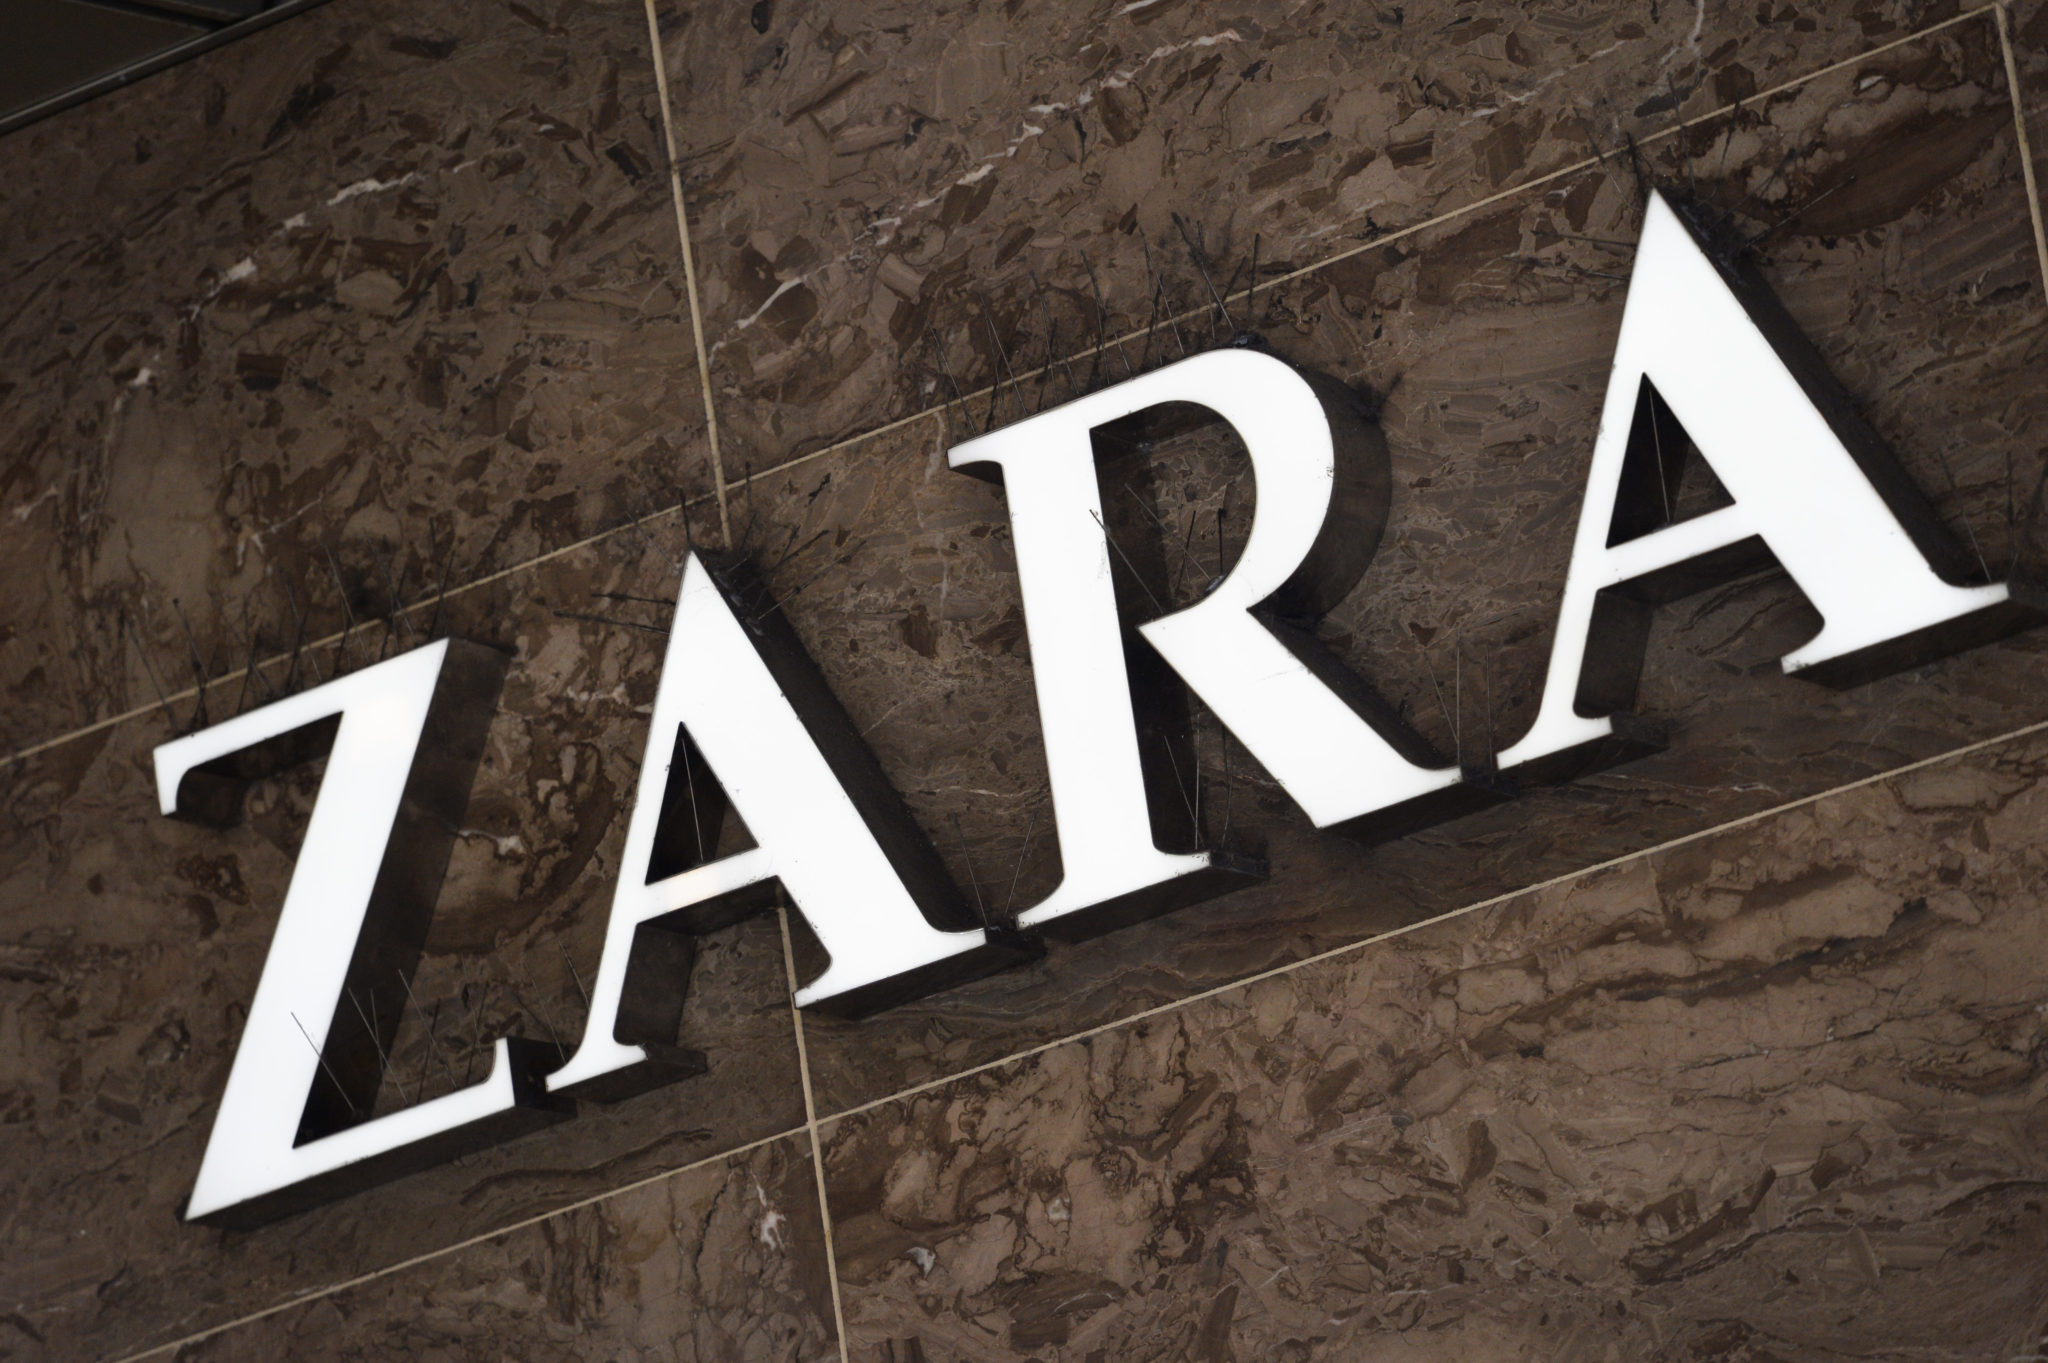 """zara vs h m and benetton """"brands such as zara, h&m, gap and benetton focused on speeding up fashion  cycles by presenting trends to consumers mid-season."""